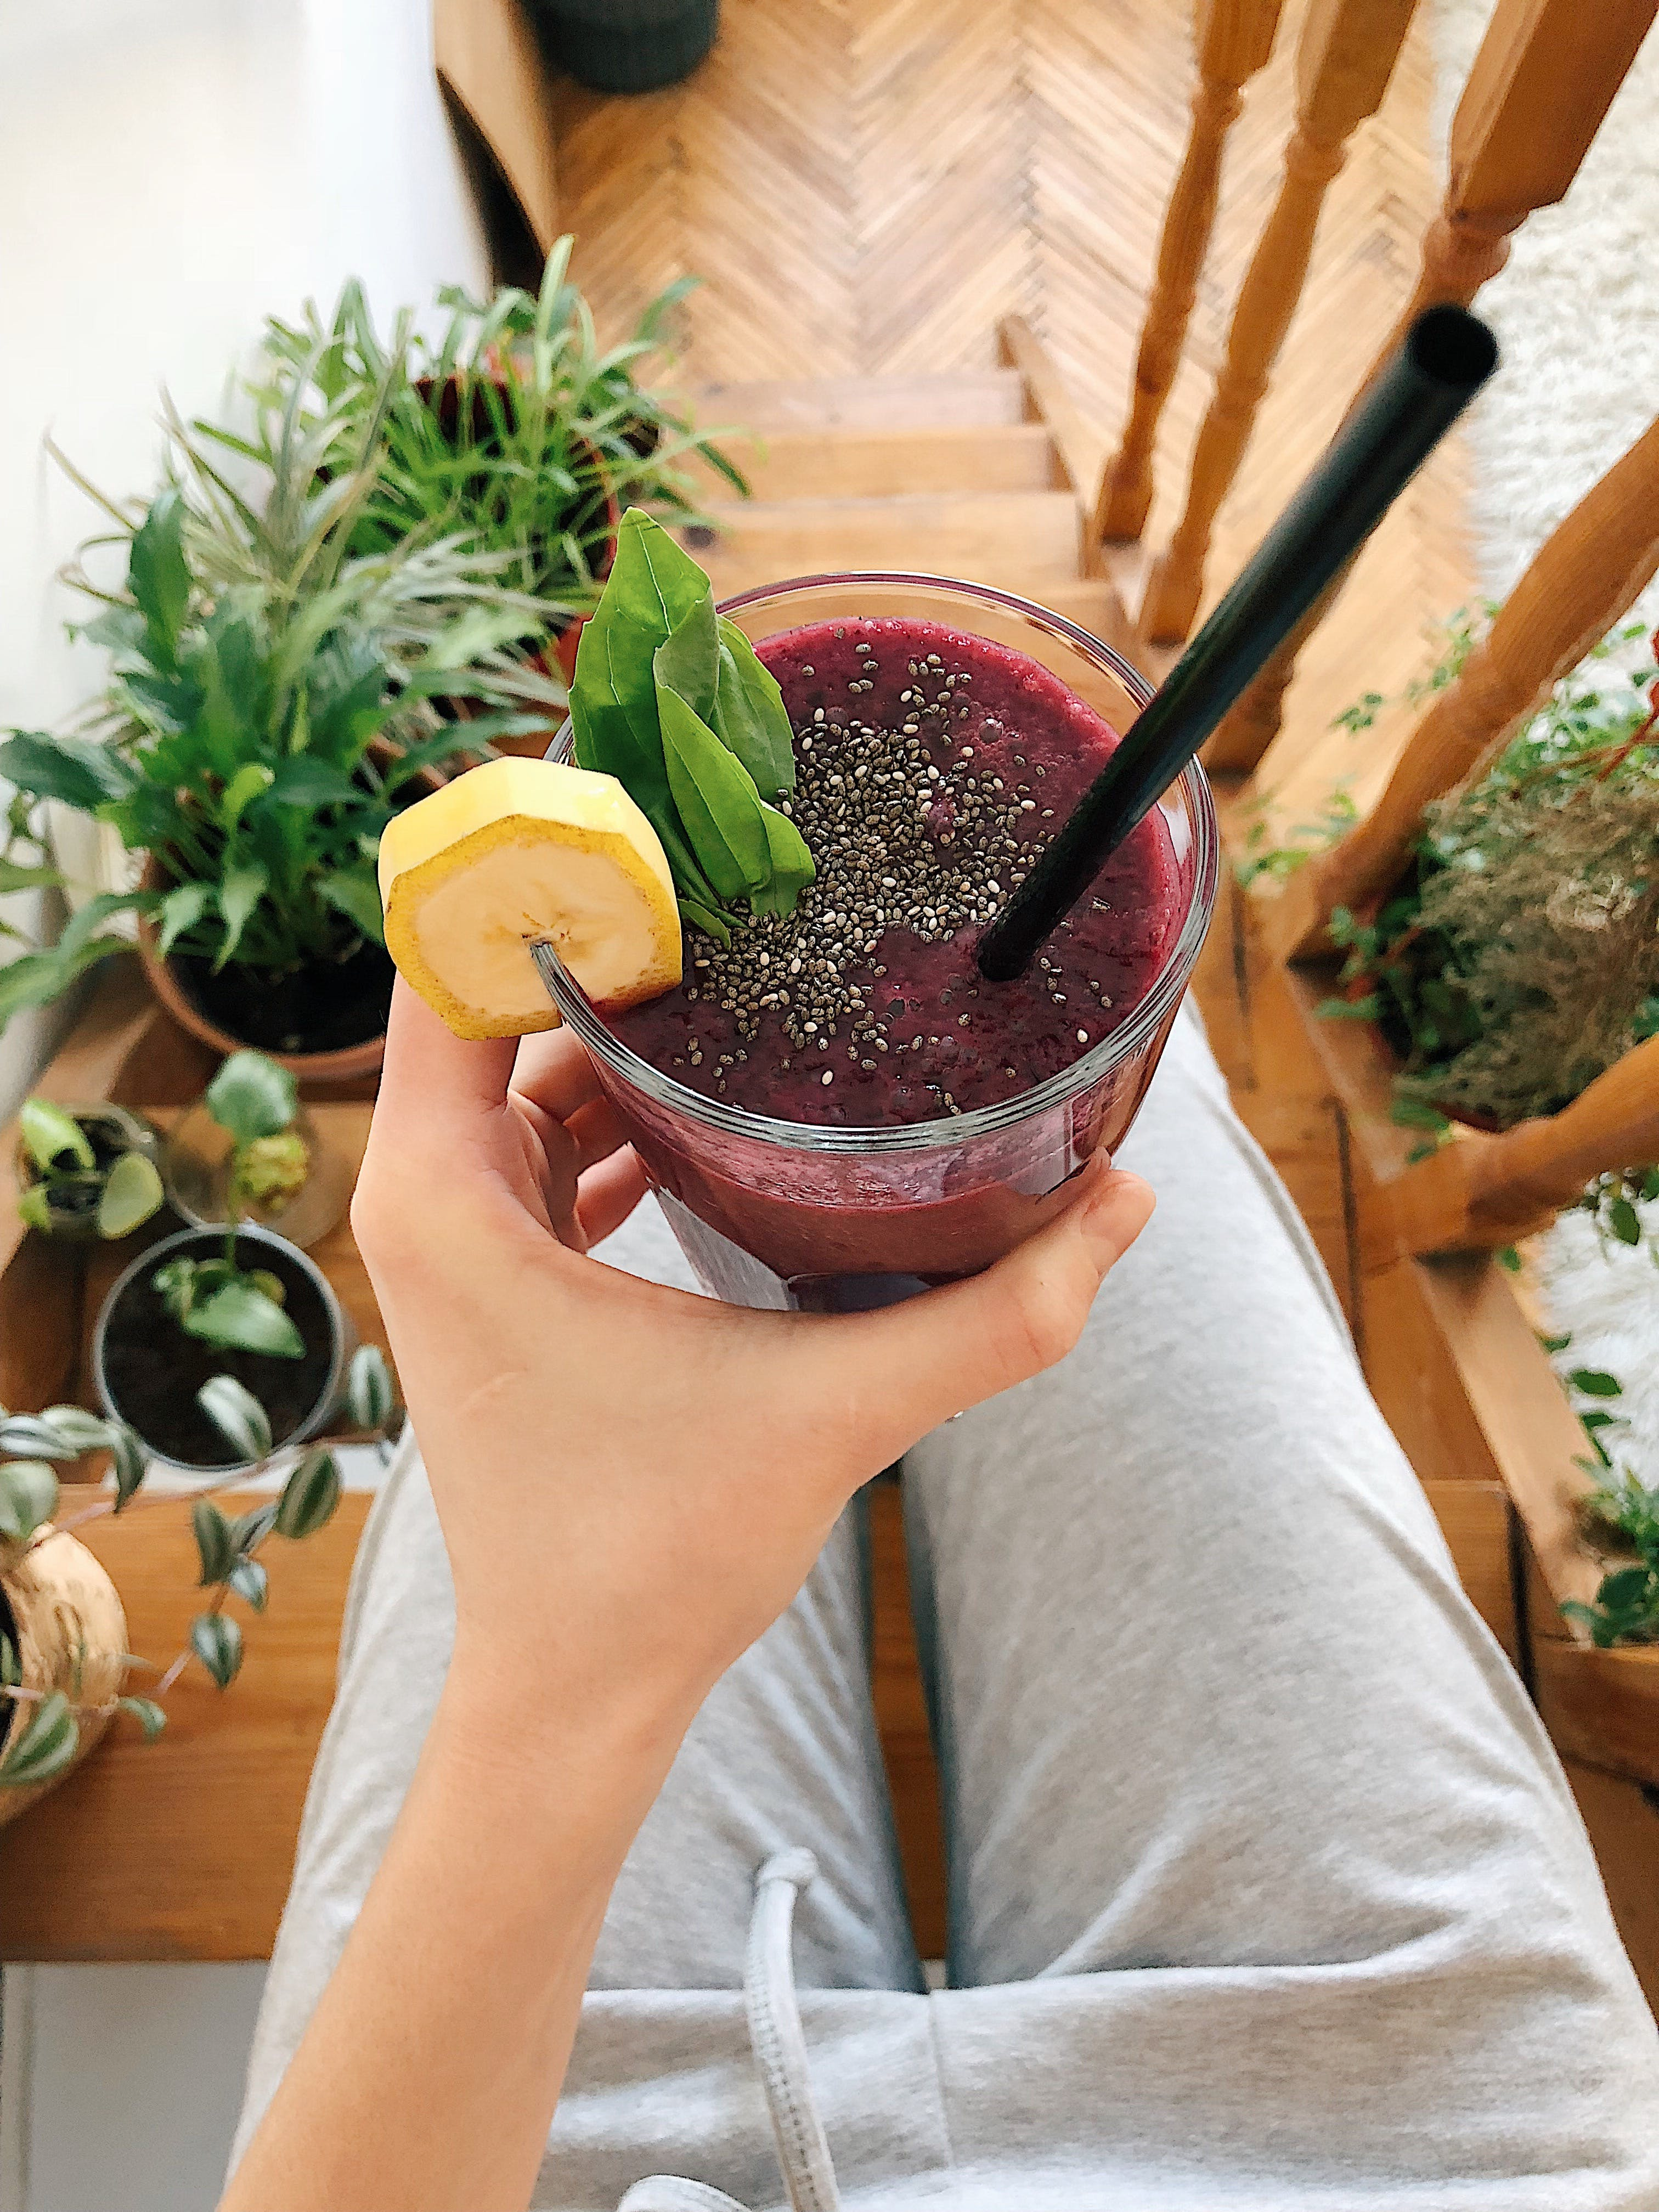 Person's Hand Holding Drinking Glass Filled With Smoothie